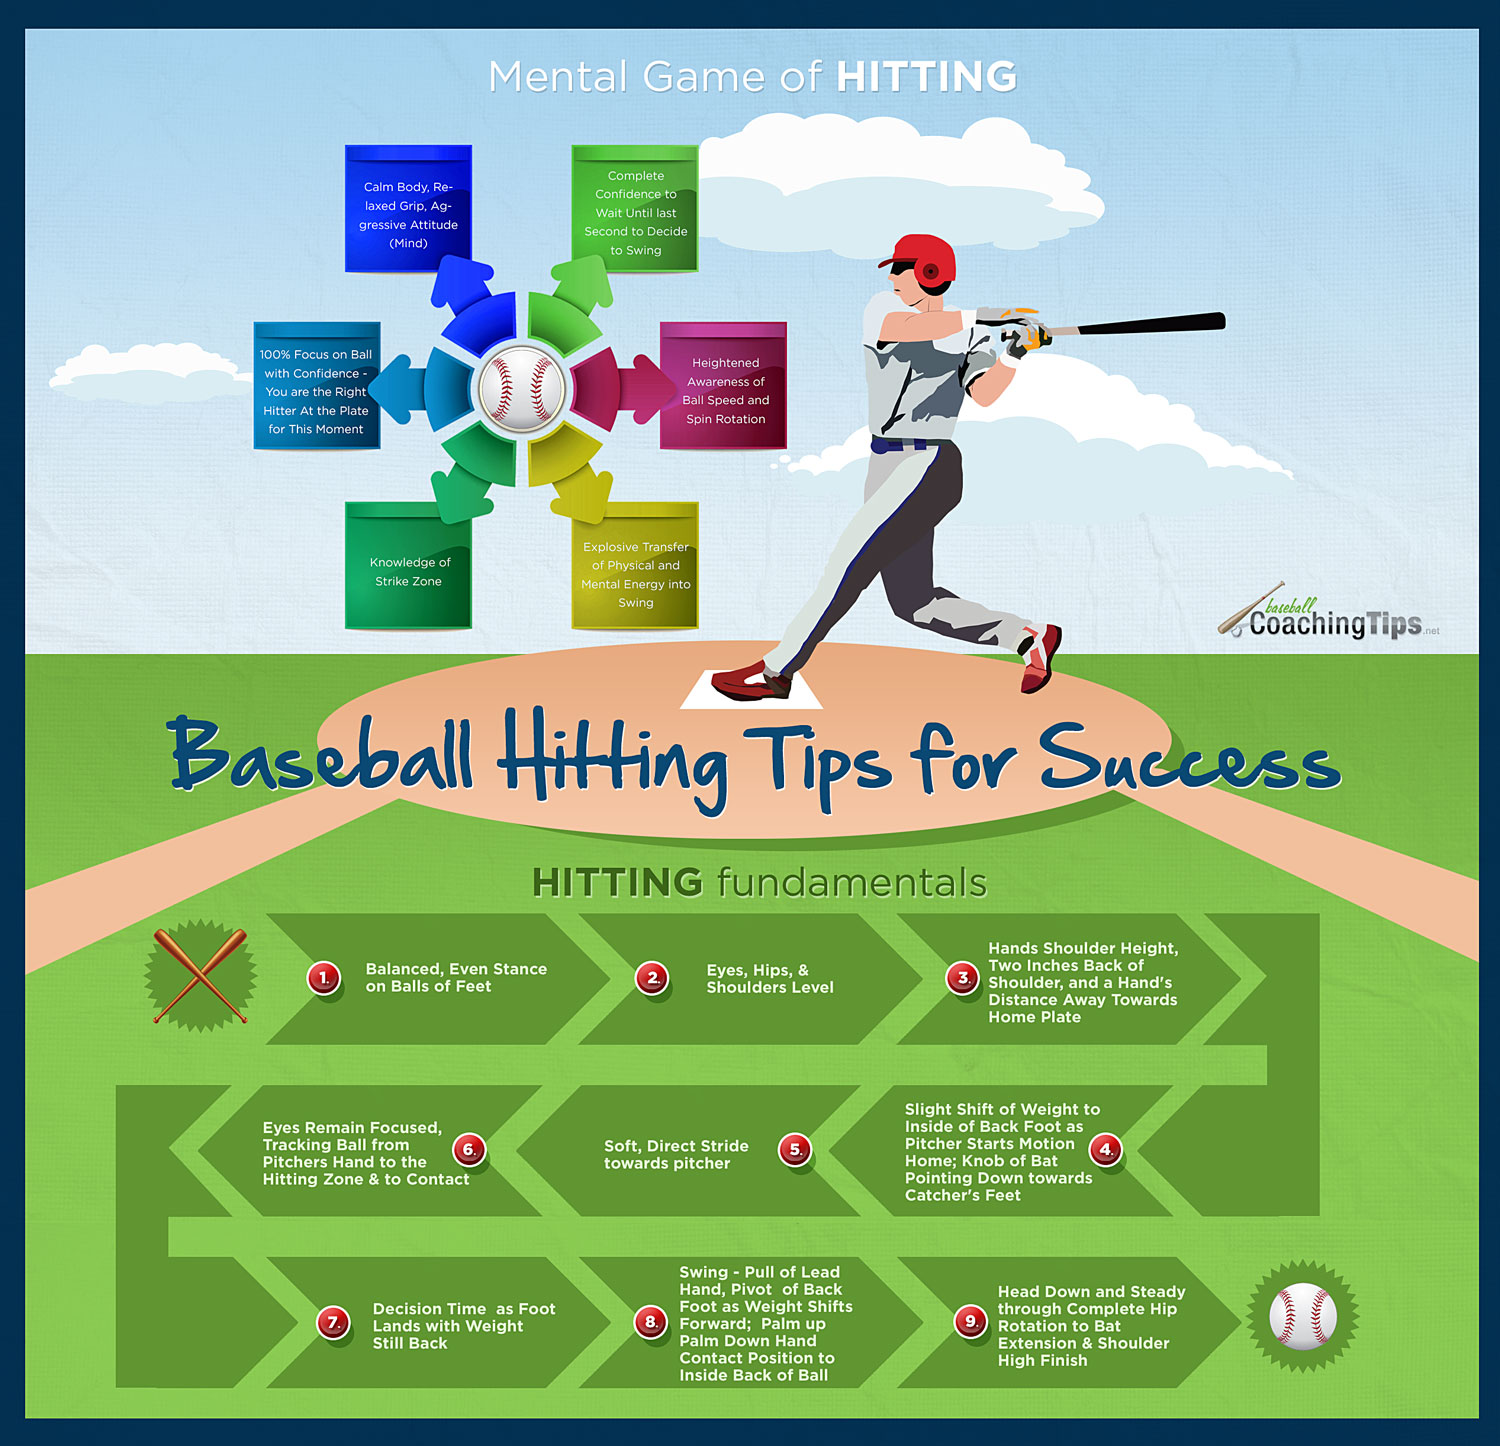 Baseball Hitting Tips for Success Infographic